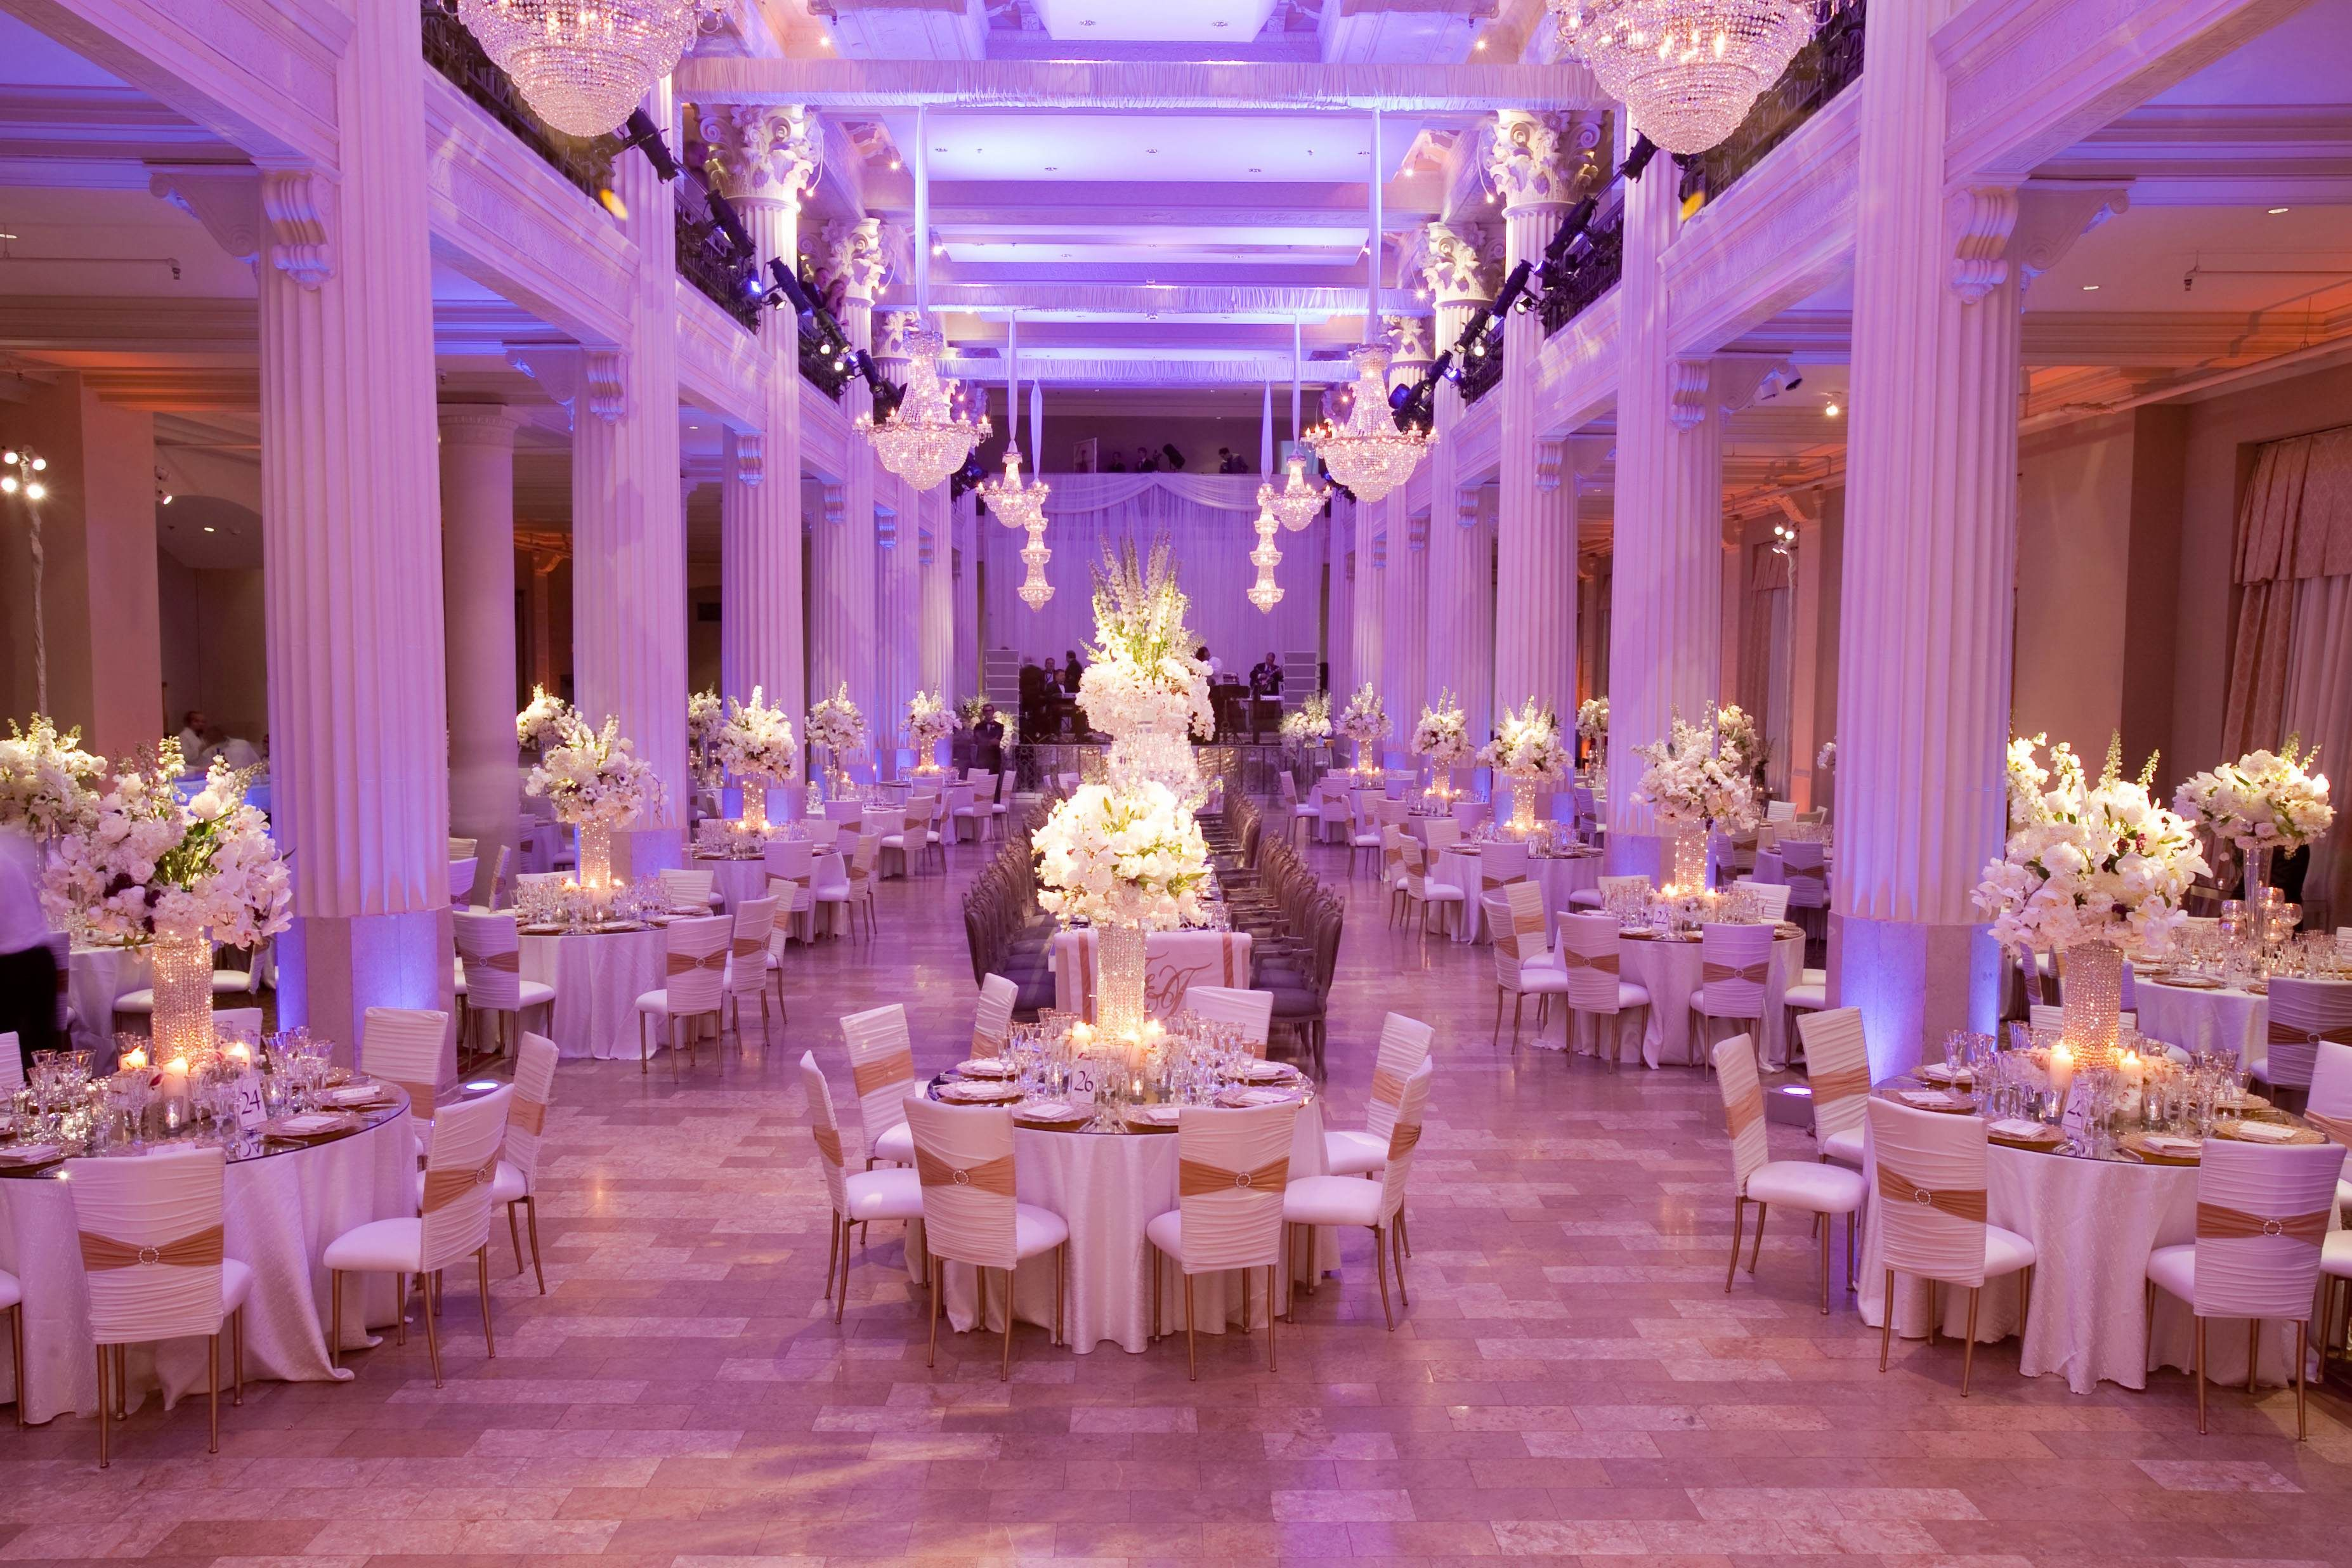 From Gobo Lighting To Pin Spotting The Ambience Of These Weddings Was Set With Exceptional